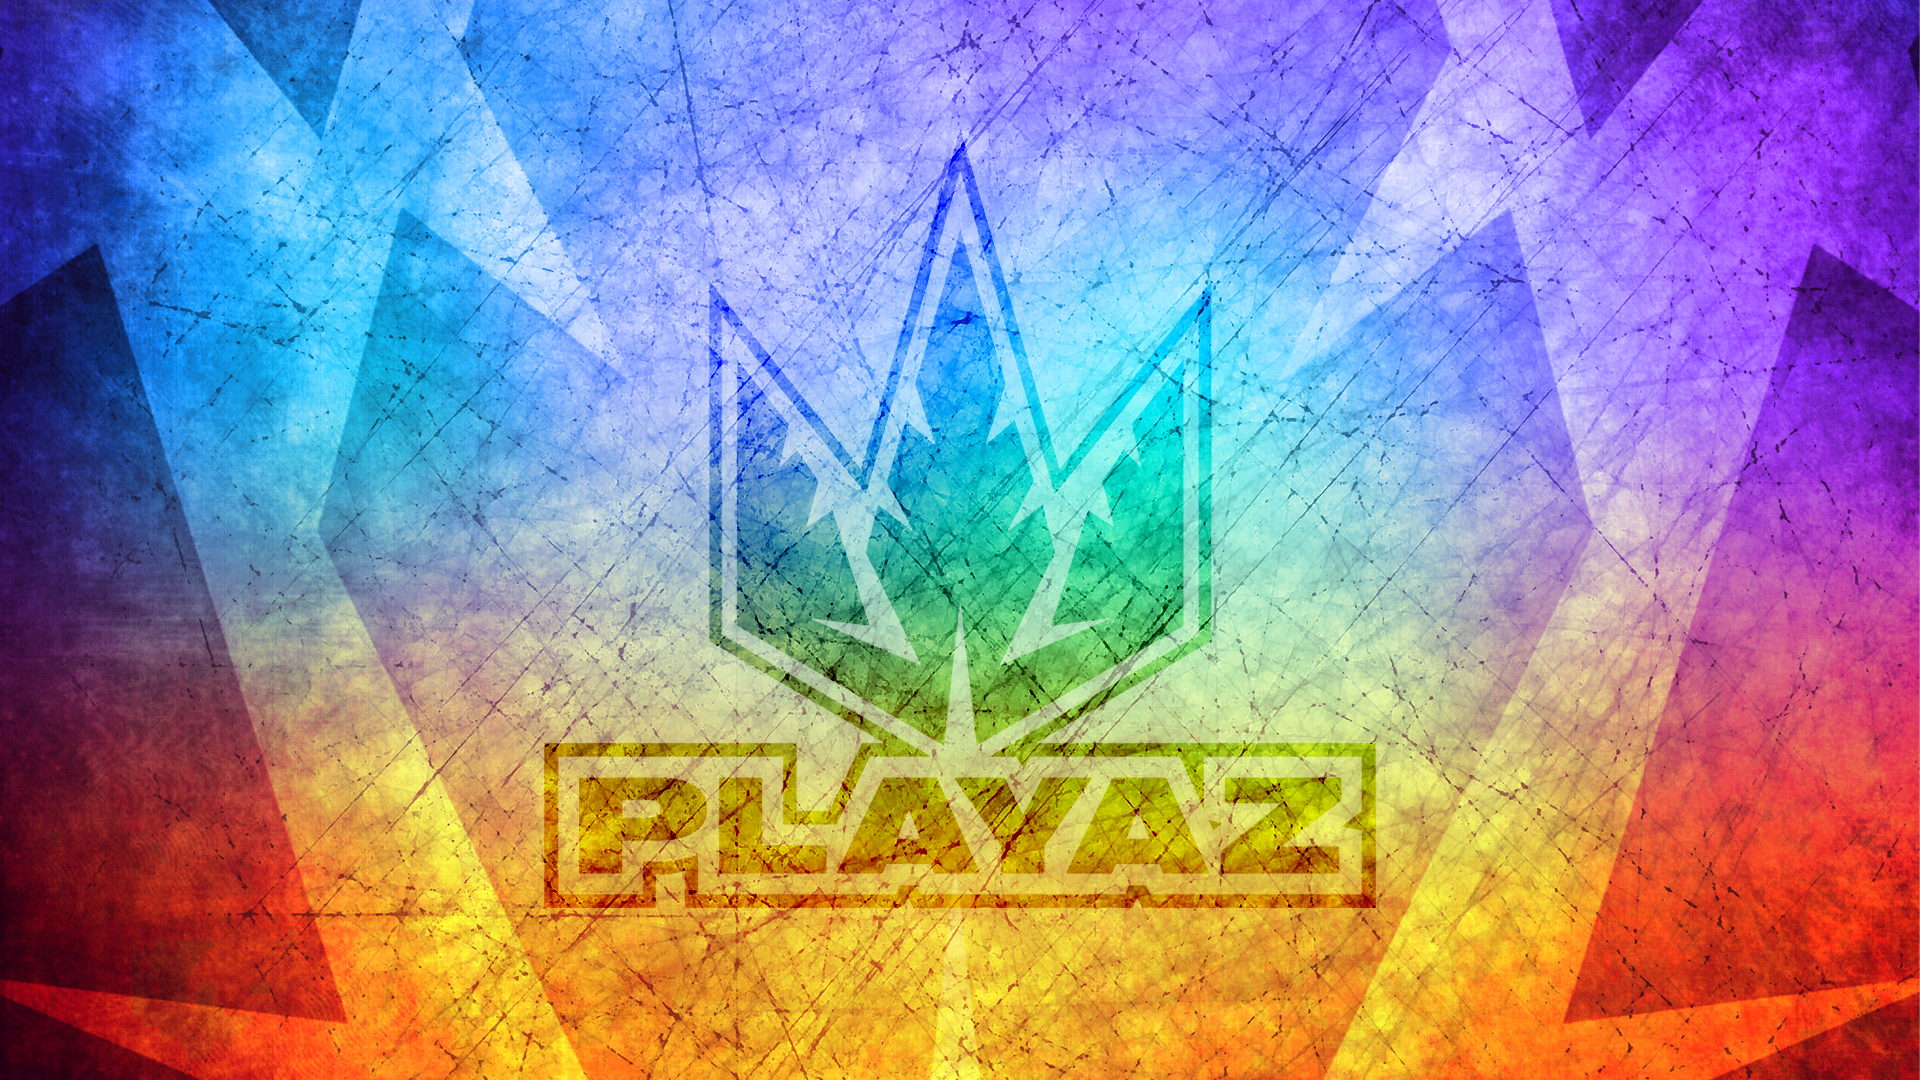 Brand New Playaz Wallpapers Playaz 1920x1080